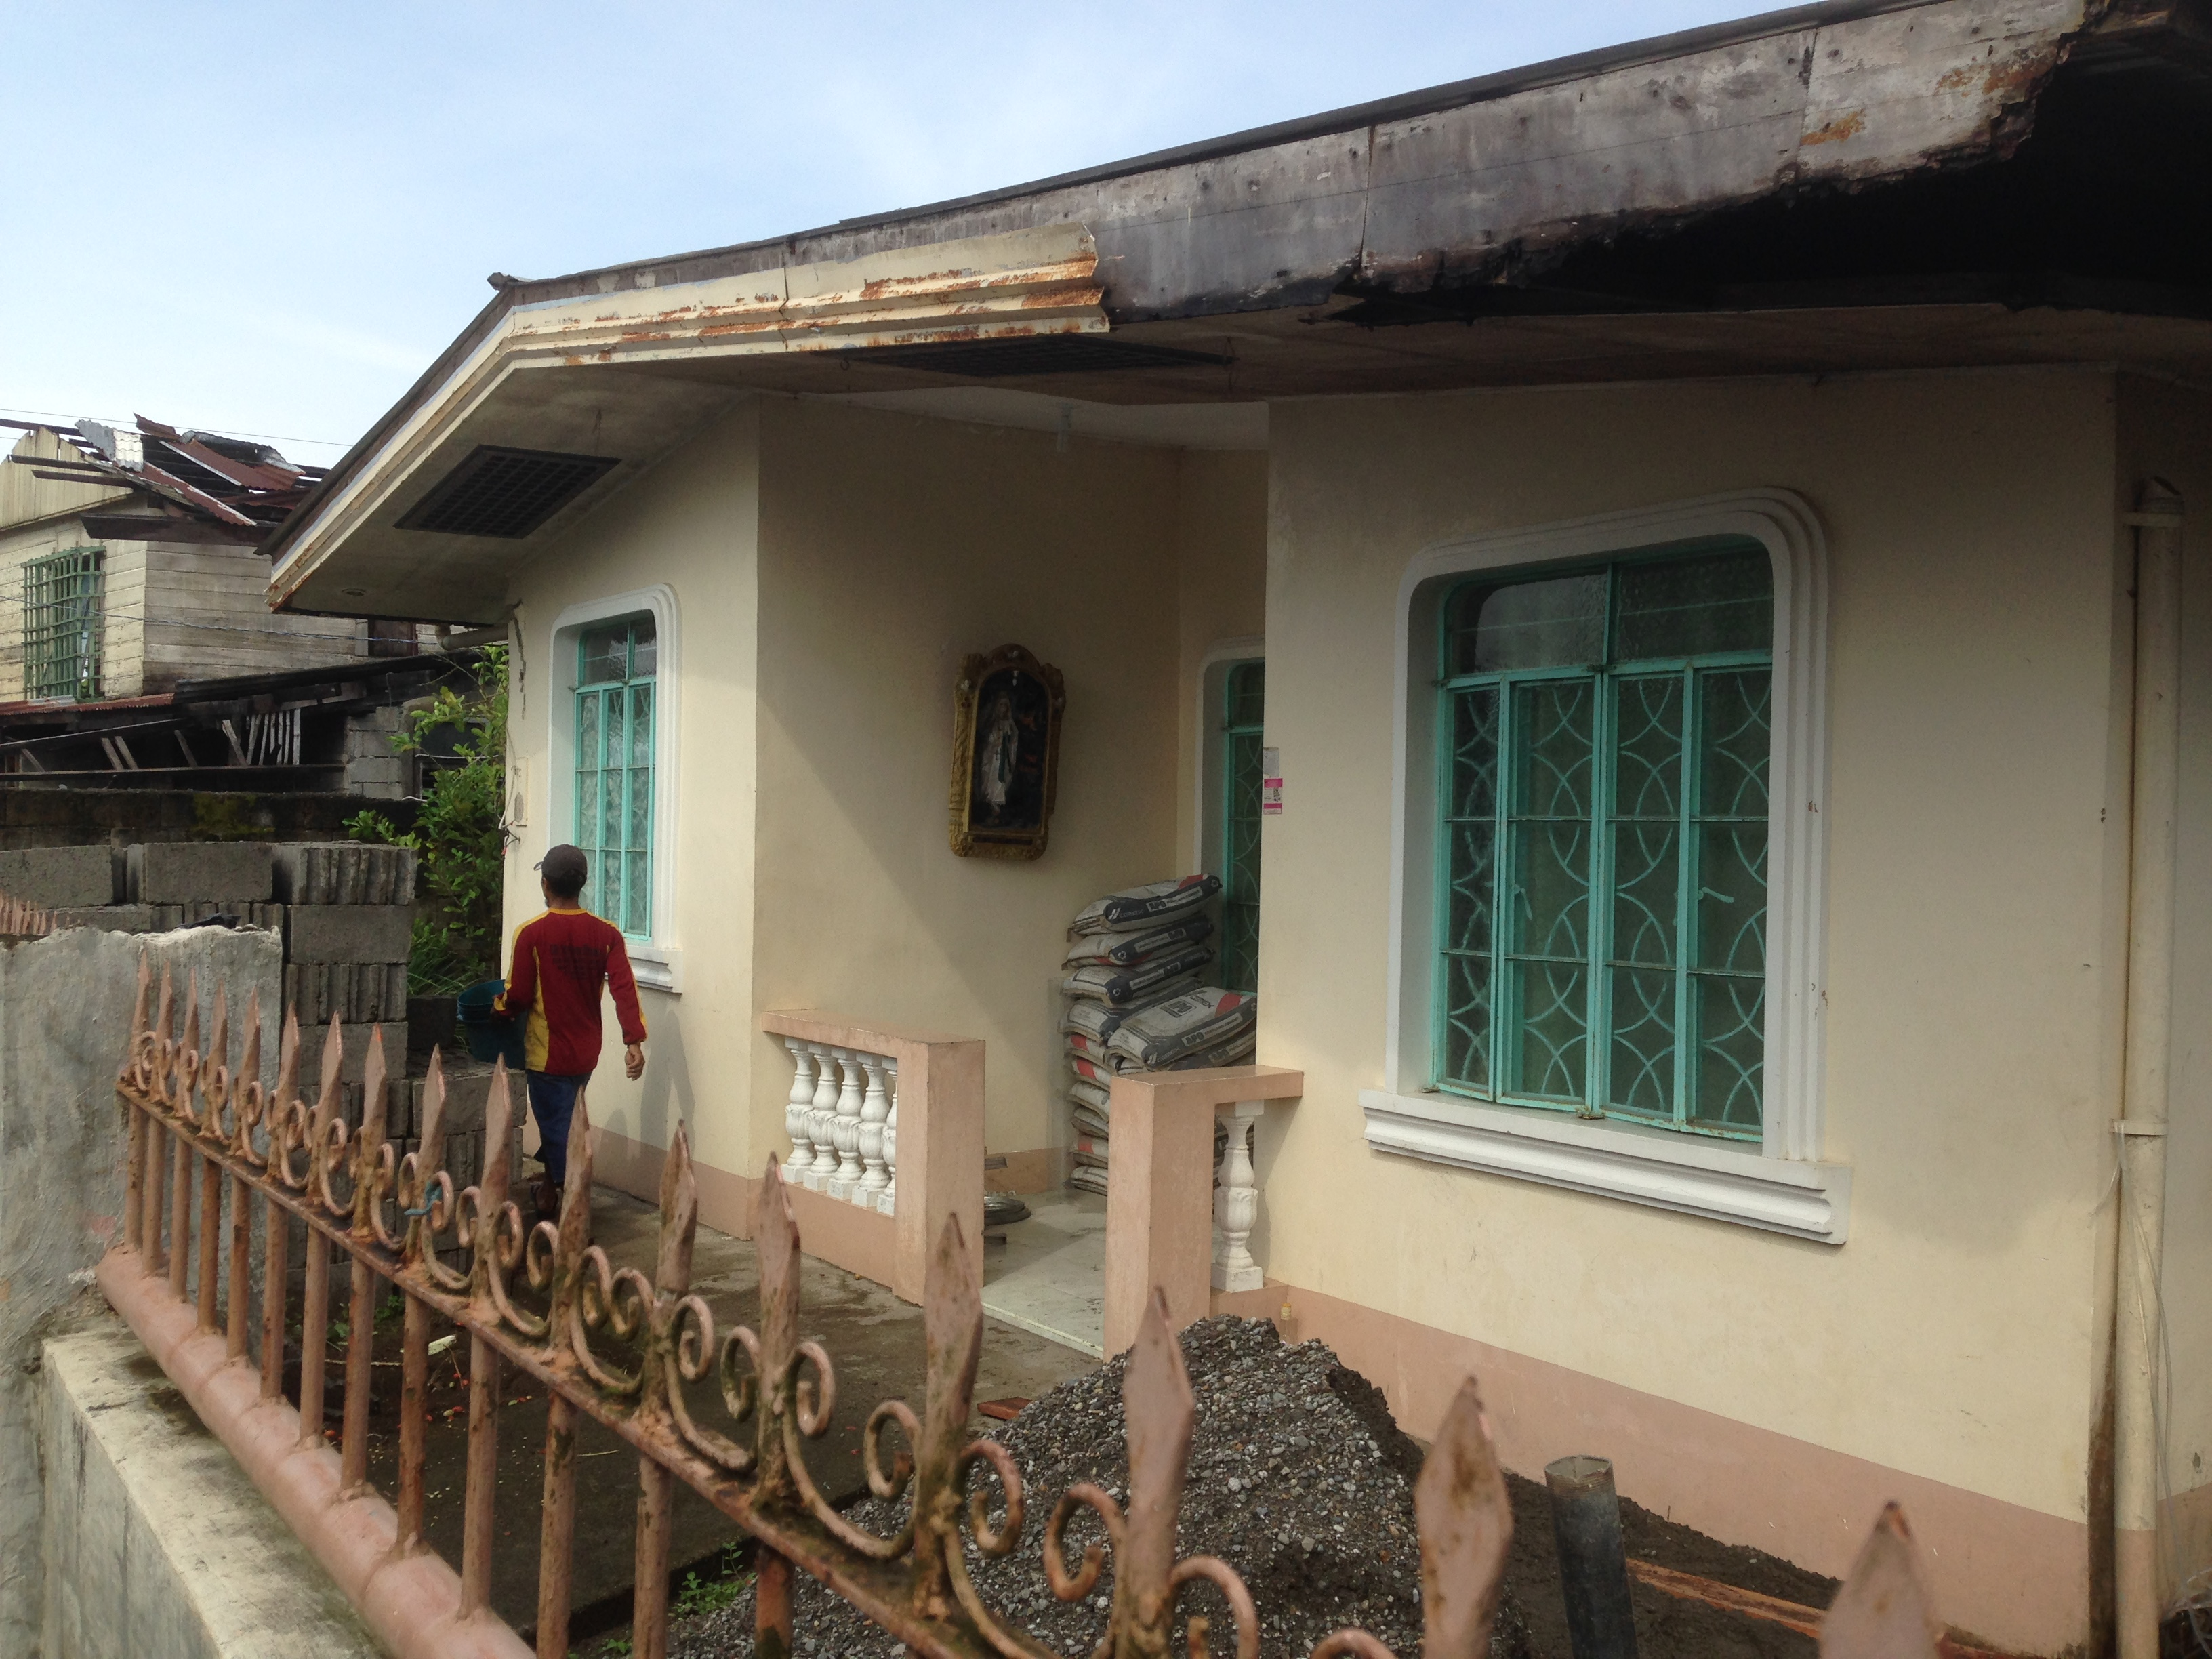 Bumi Wadah Foundation Philippines, which will become Sai Maternity Clinic; building is being repaired